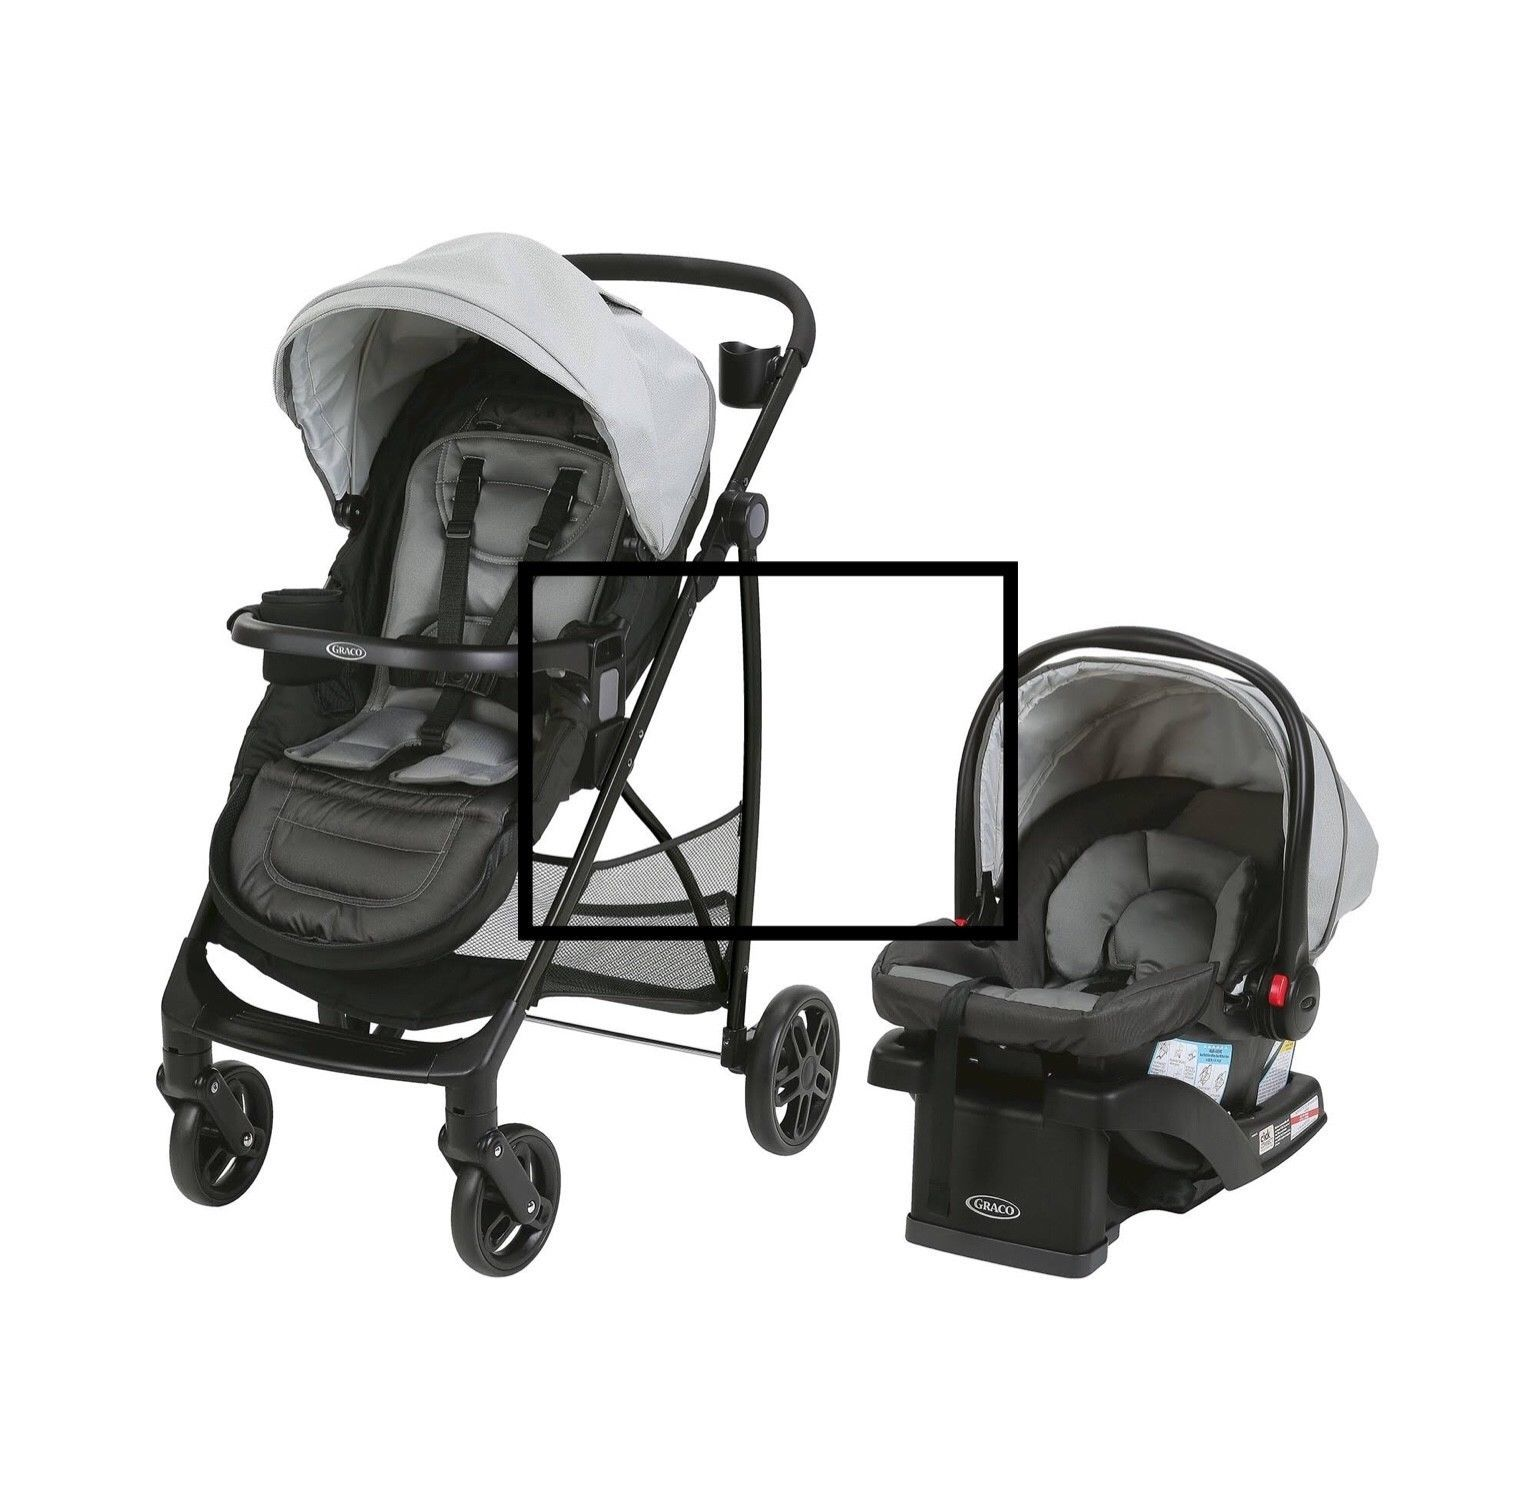 Graco Remix Travel System with Snugride 35 Baby